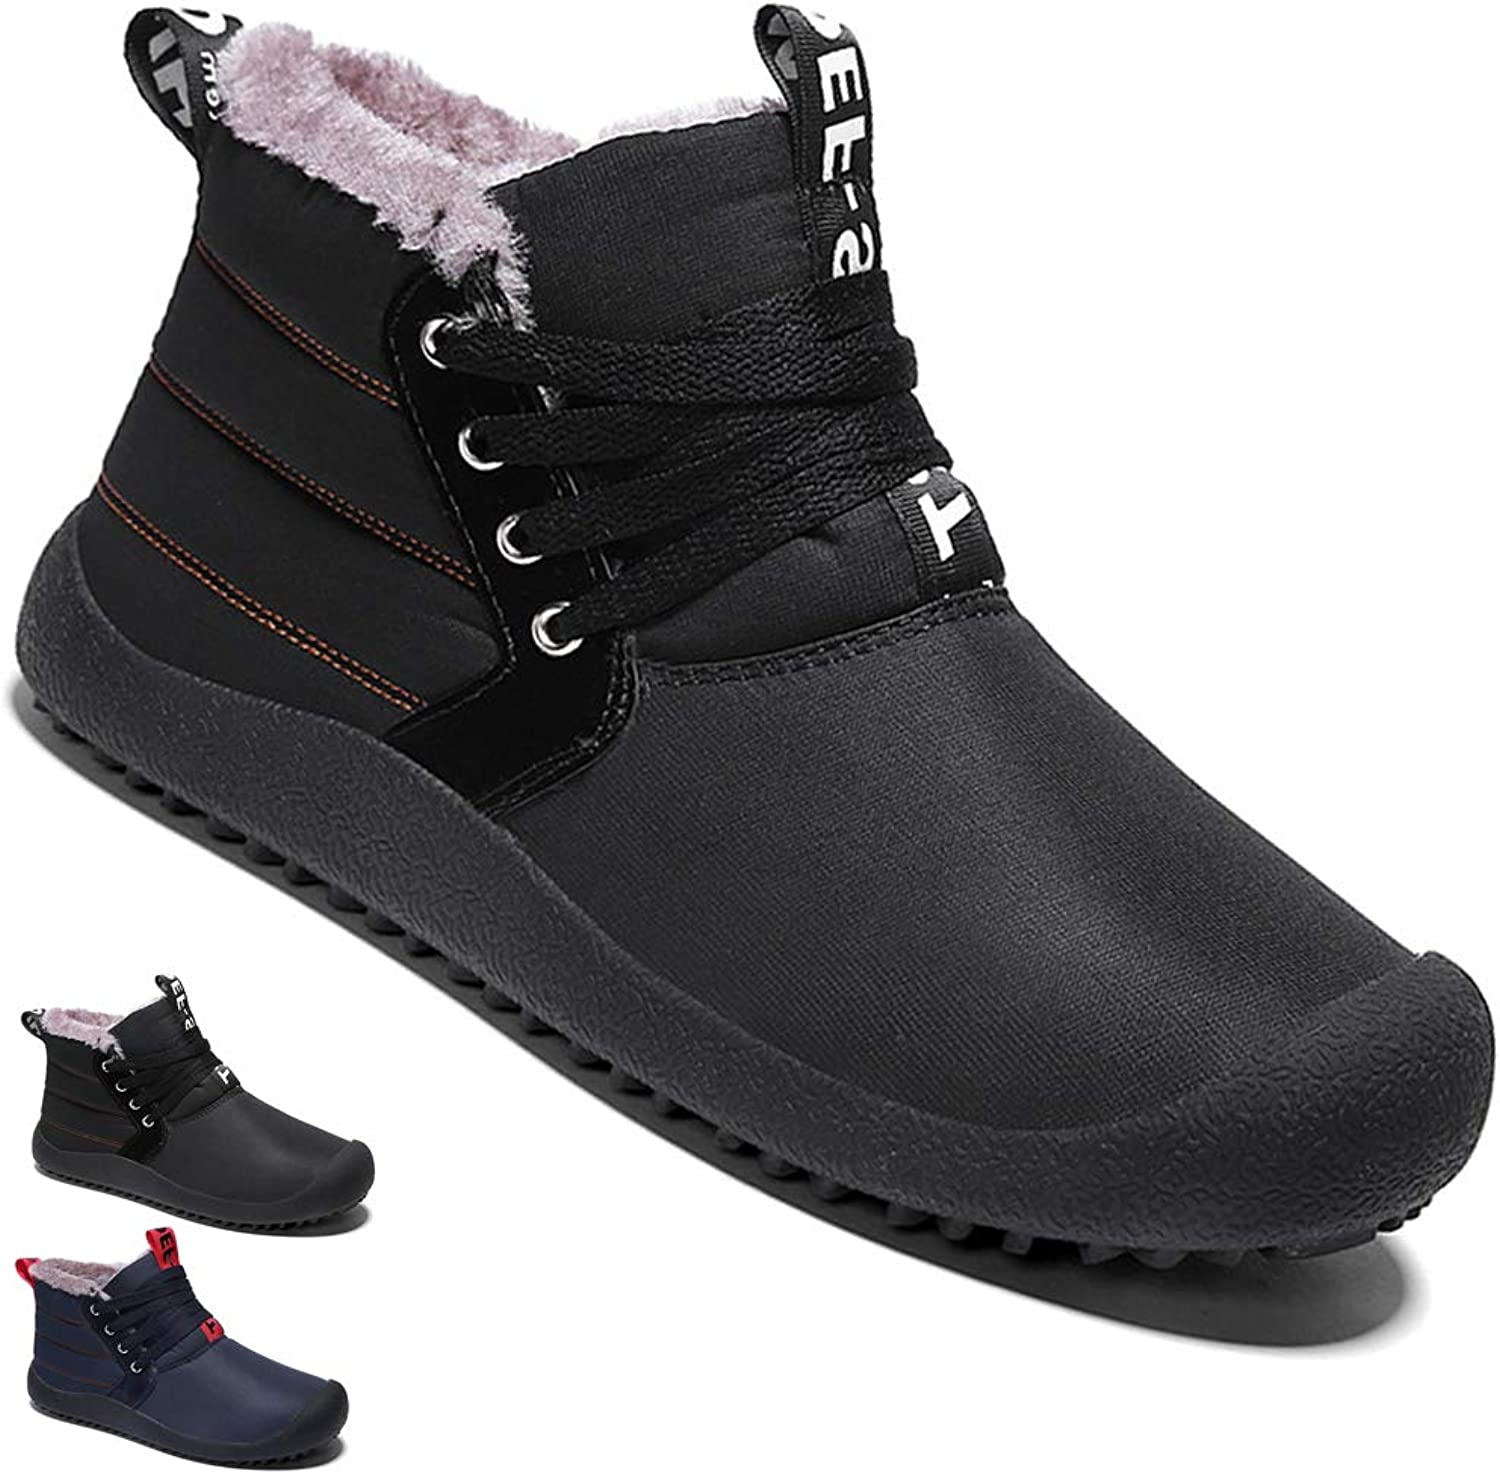 Yooabc Men's Warm Snow Boots Waterproof Slip On Booties Fully Fur Lined shoes